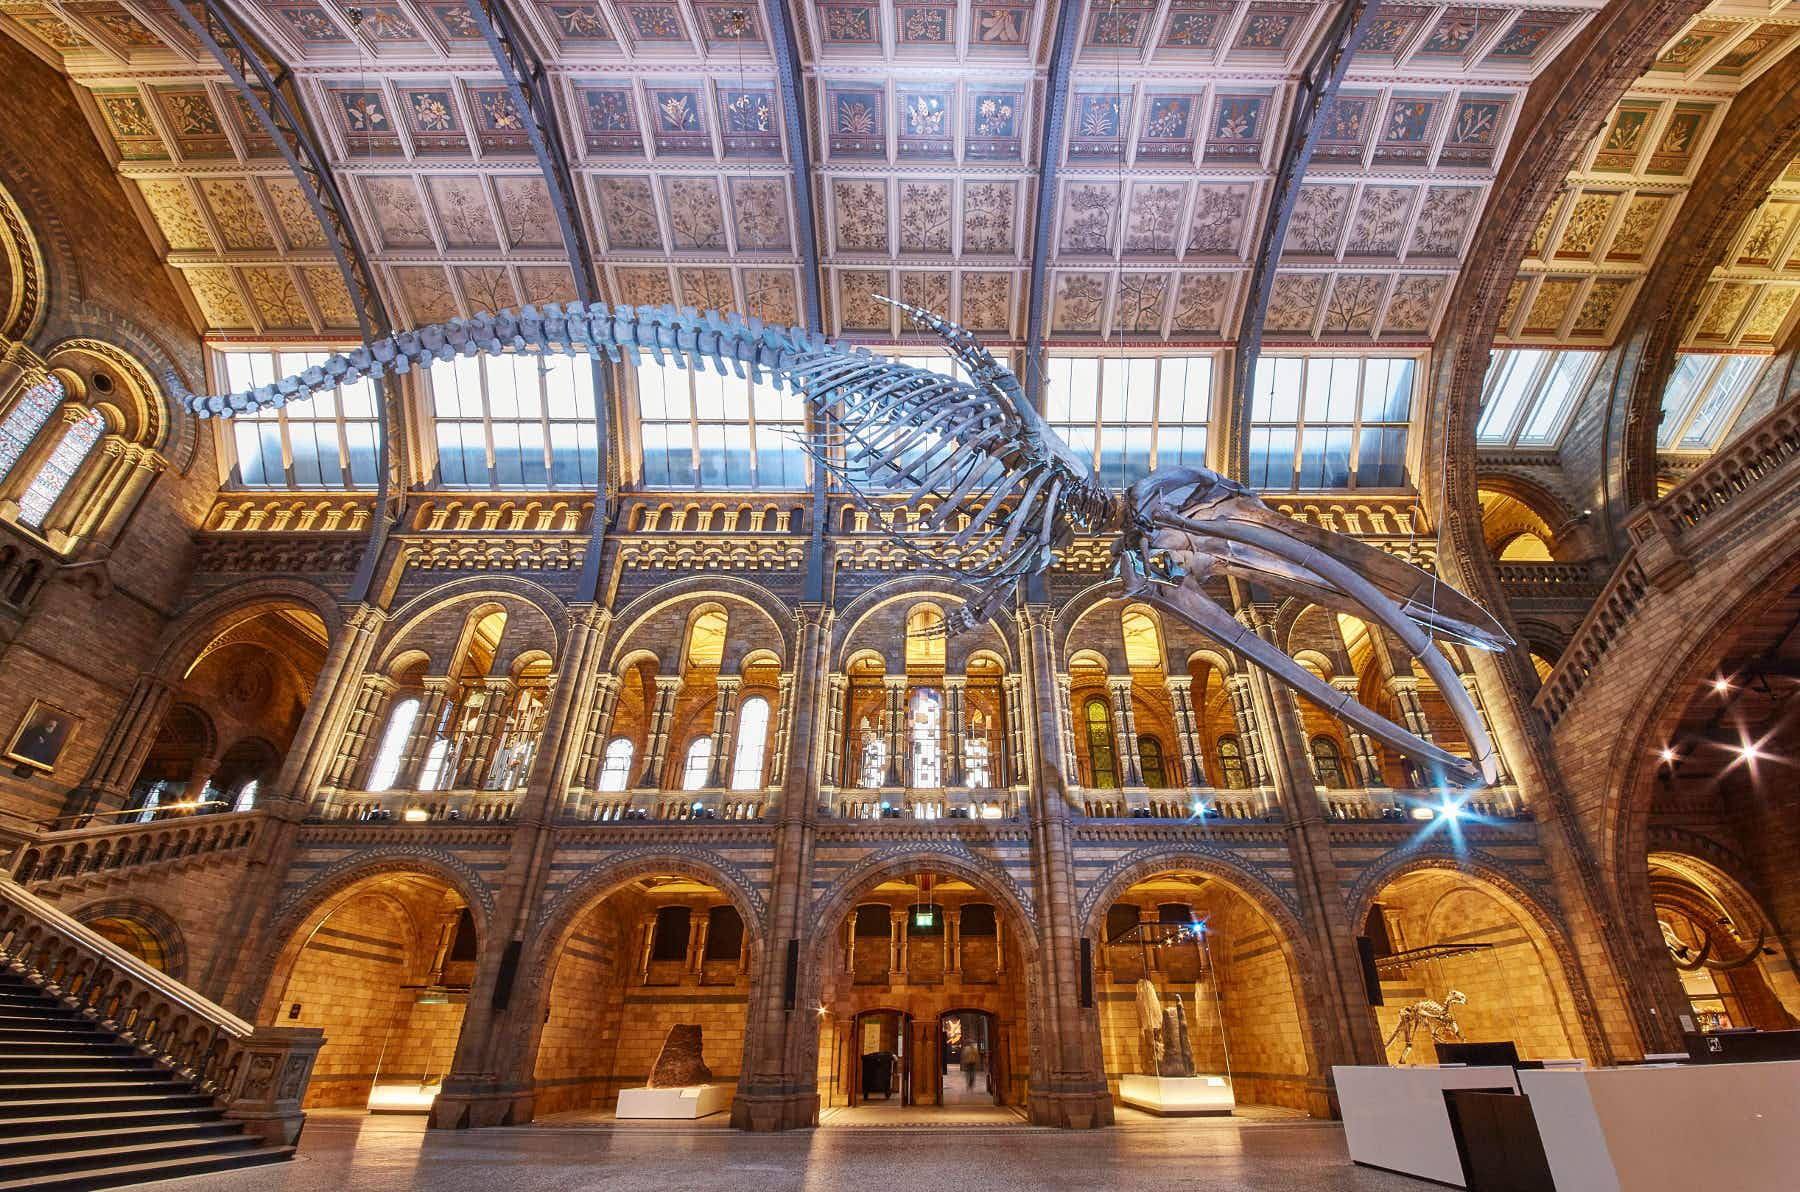 London's Natural History Museum's spectacular transformation has a message of hope